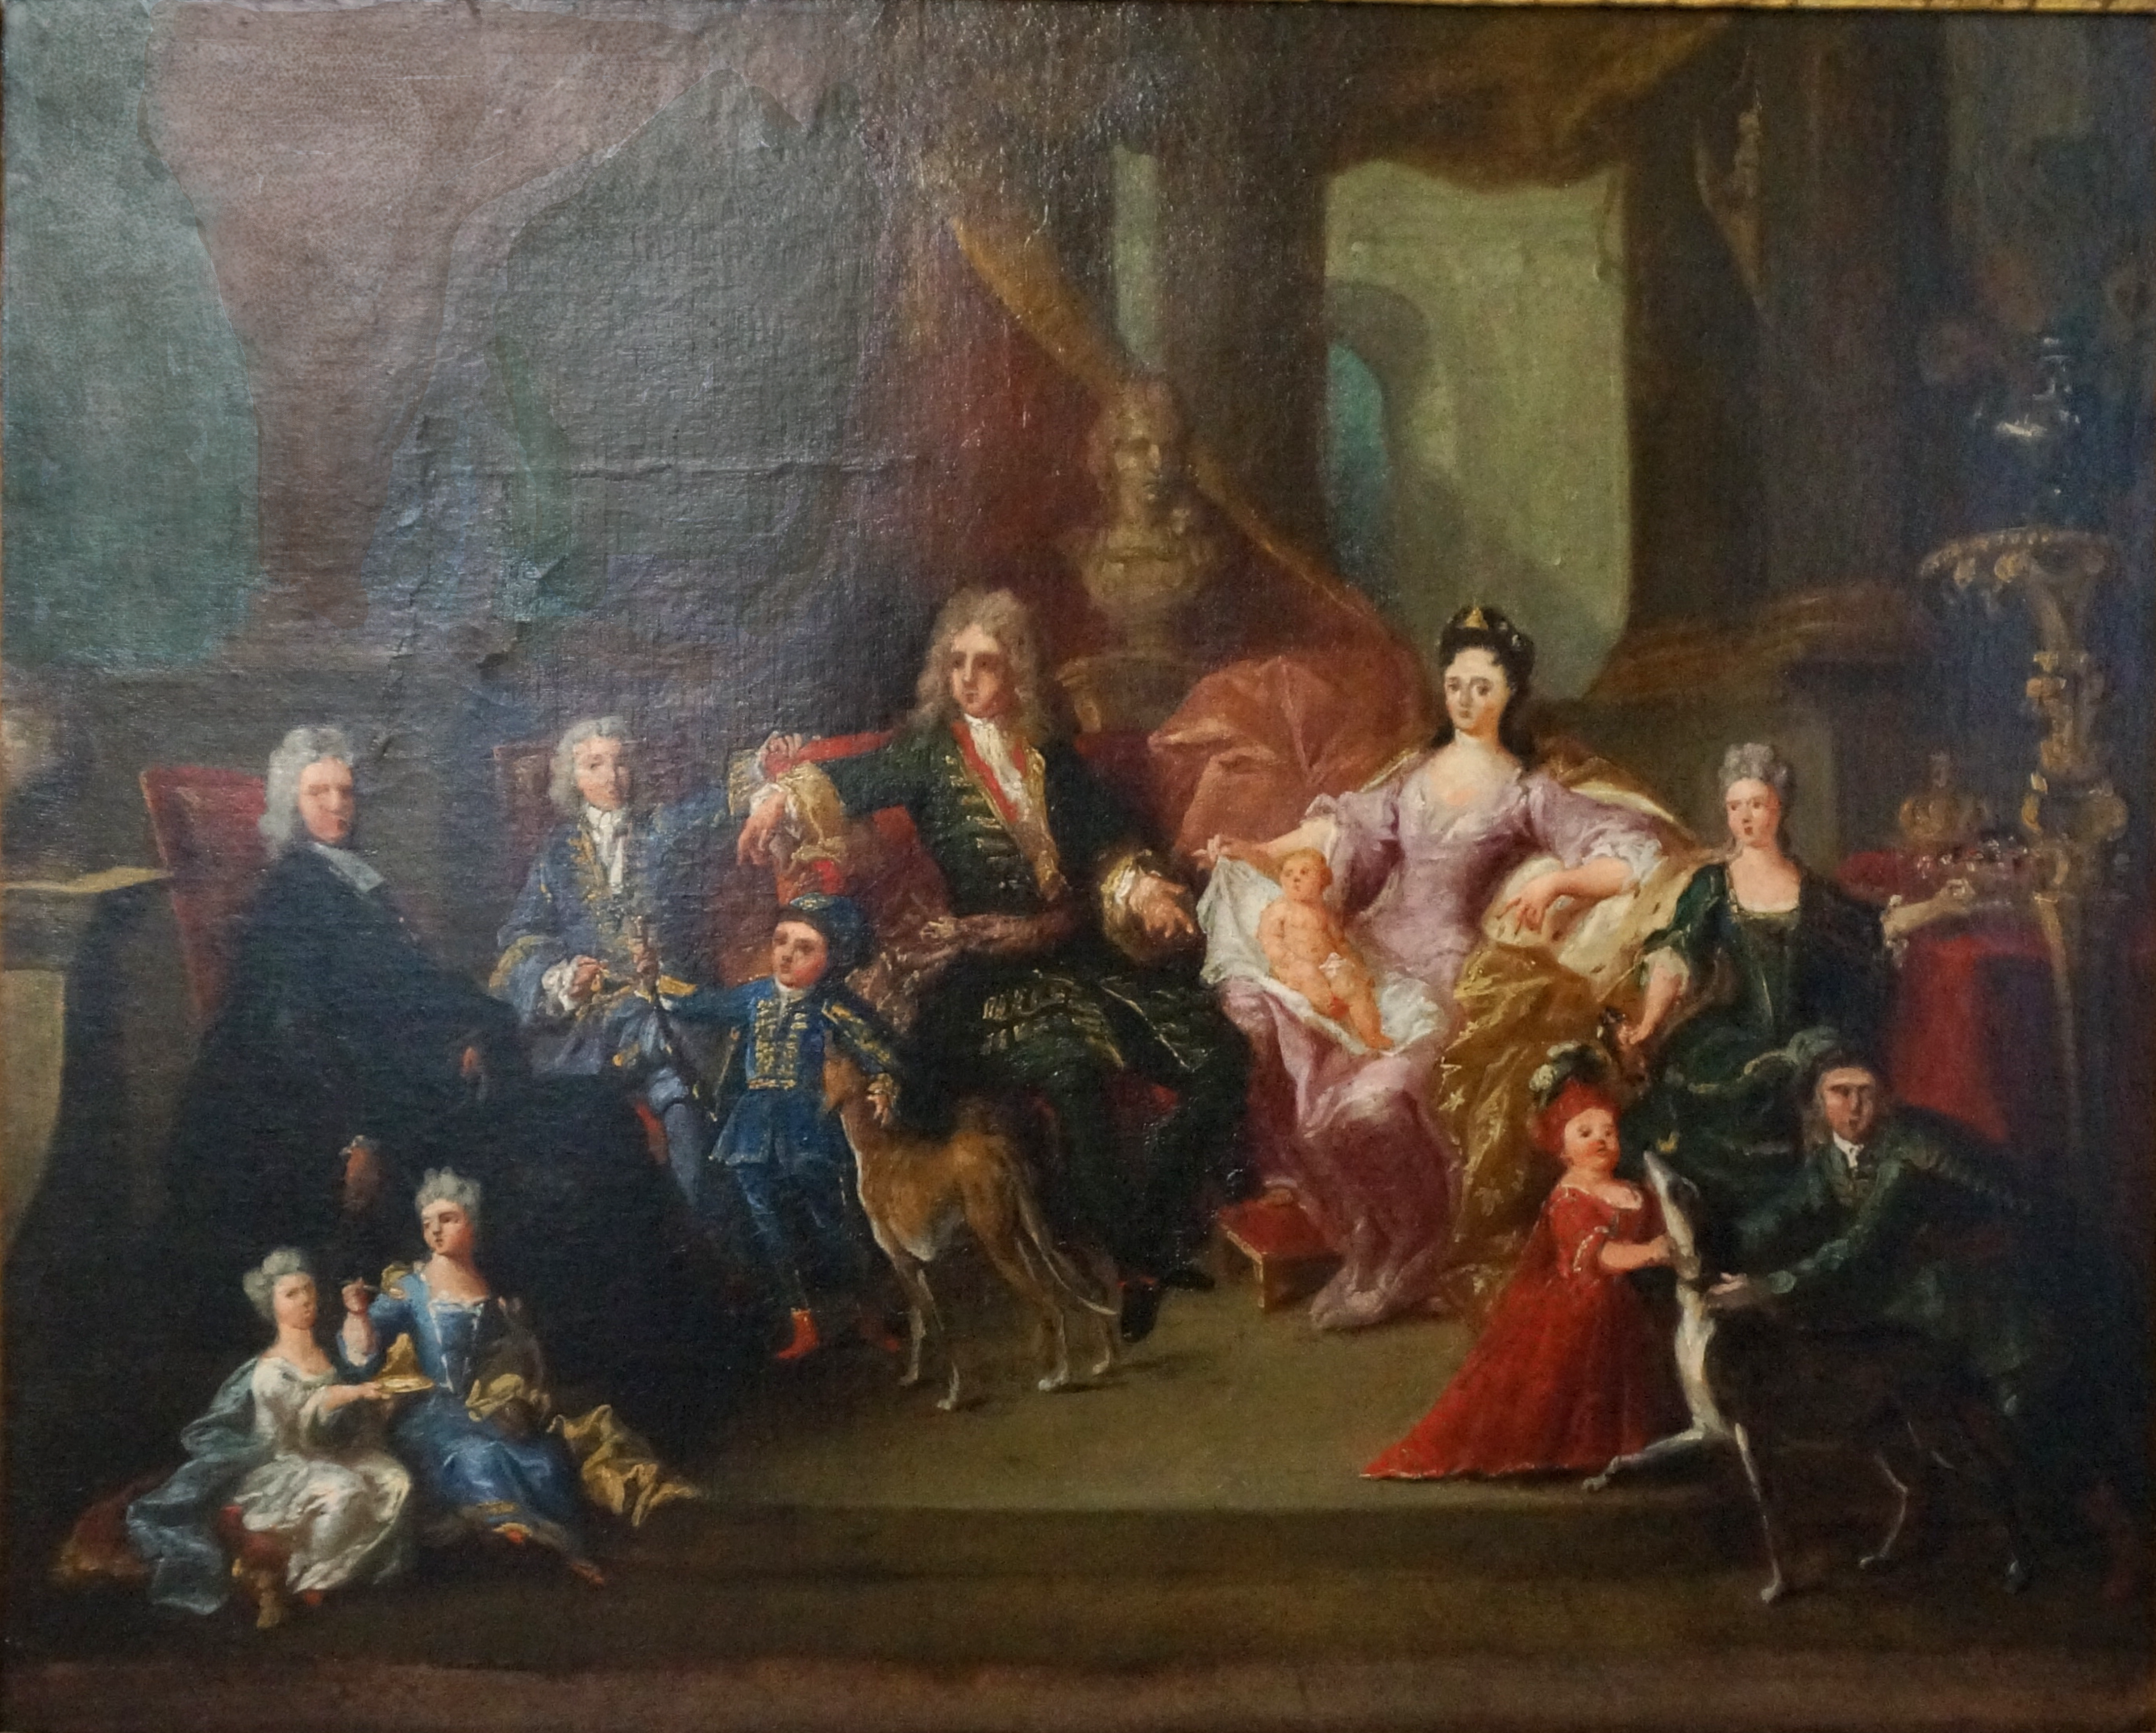 File:(Cropped) Family of Léopold I of Lorraine in circa 1710 attributed to